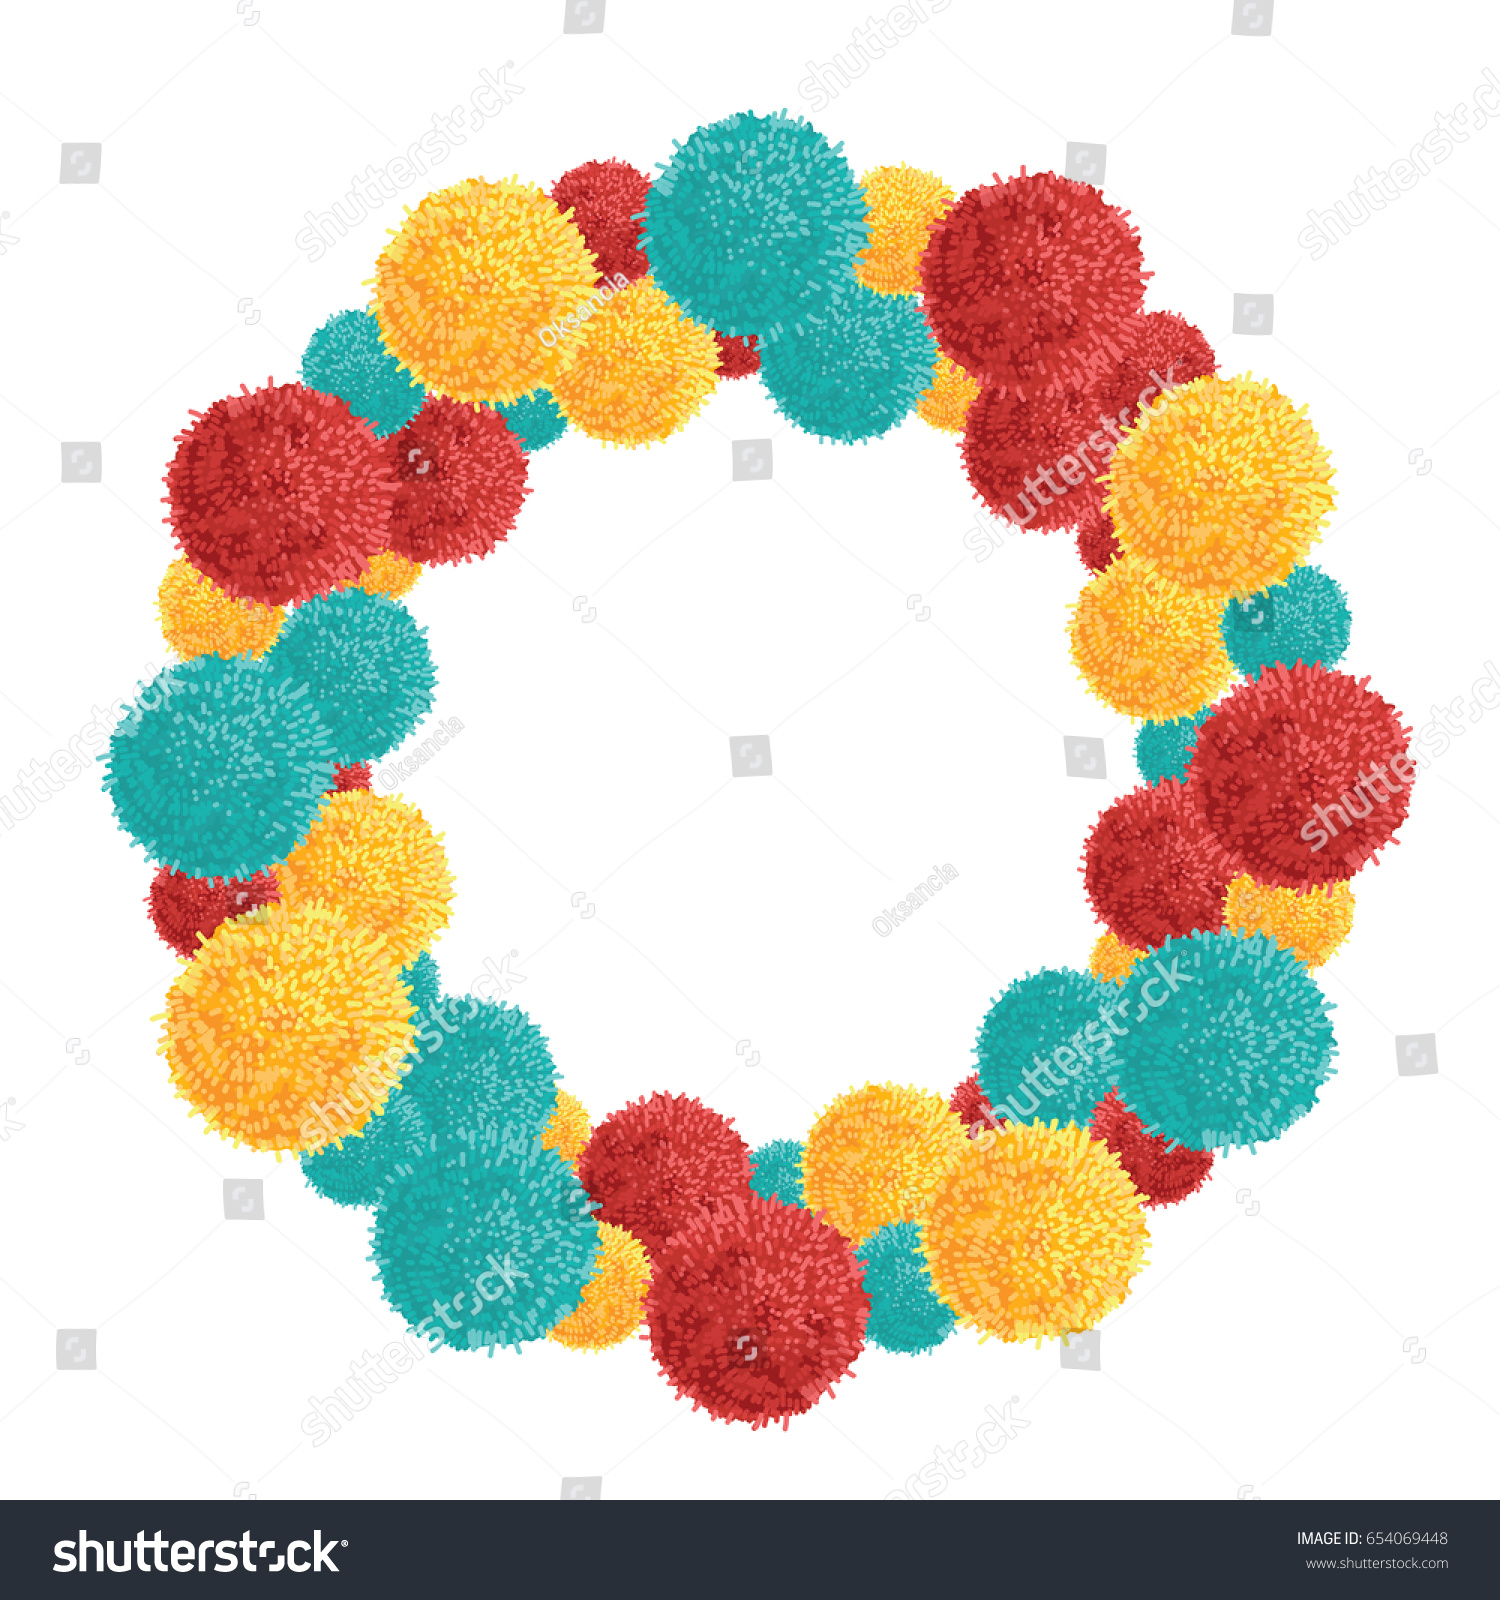 Vector Big Chunky Wreath Colorful Vibrant Stock Vector (Royalty Free ...